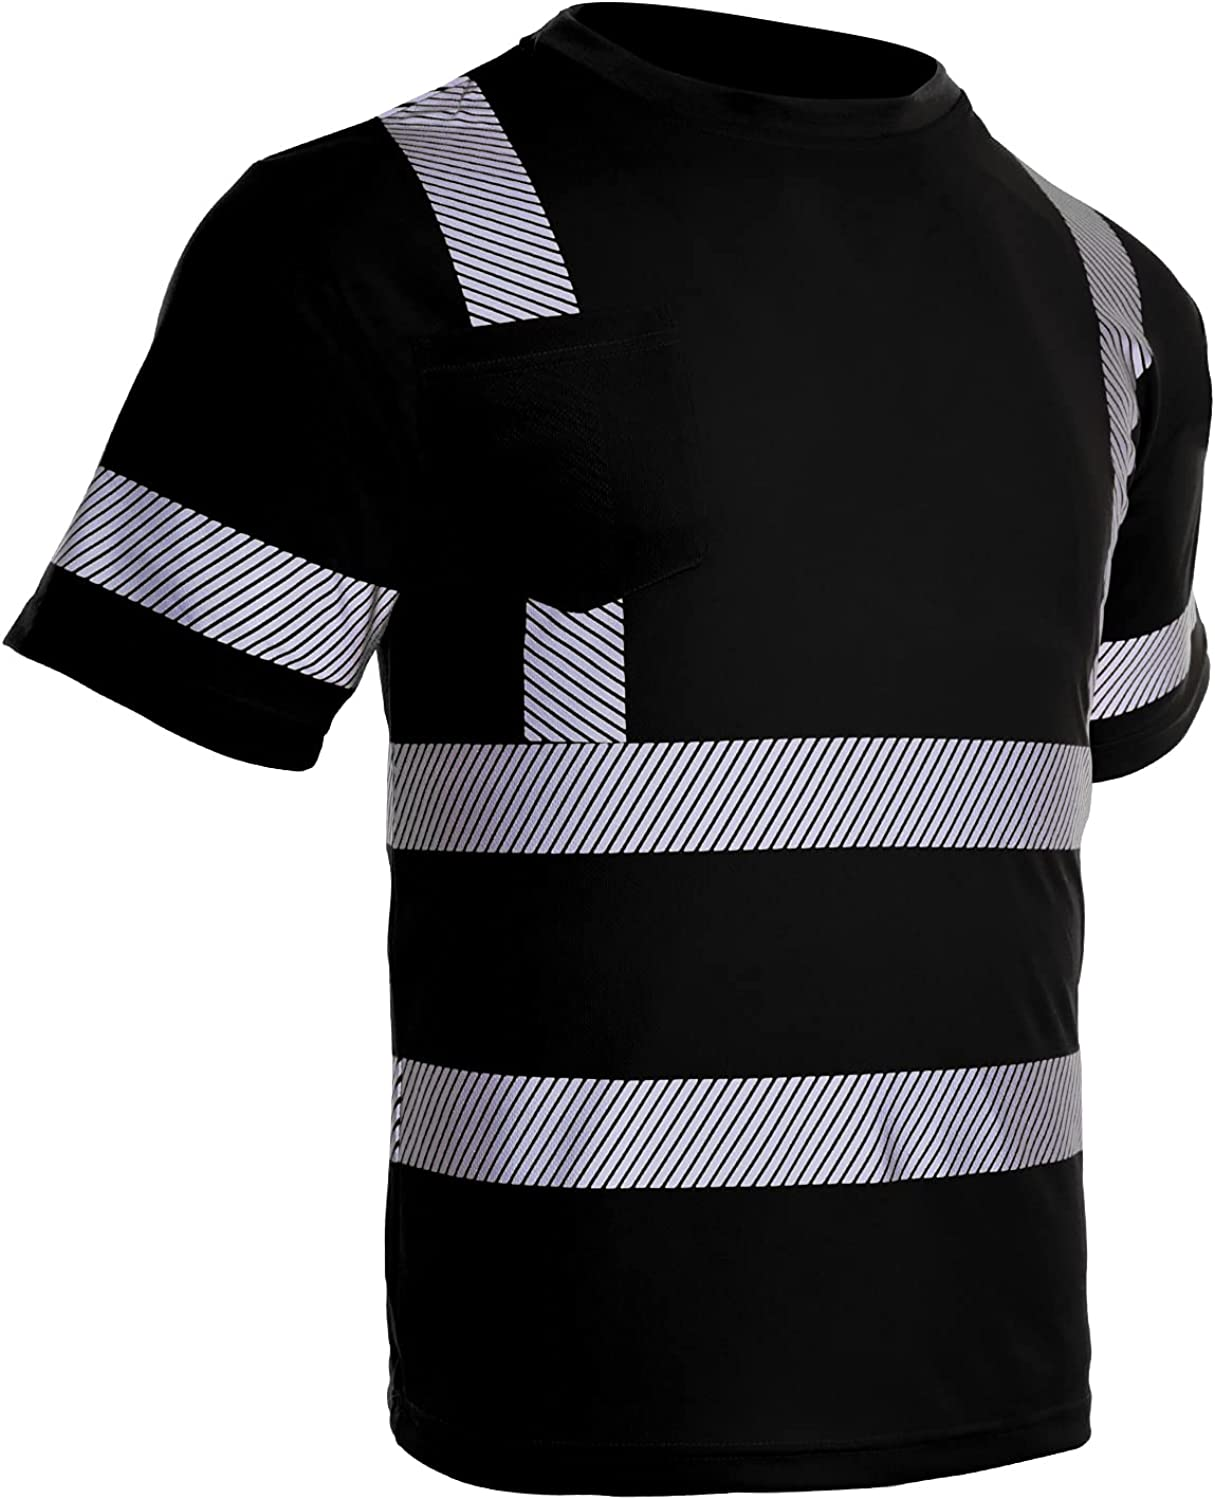 BLKNIGHTS High Visibility Reflective Safety ANSI Excellent for Lowest price challenge Shirt Men C